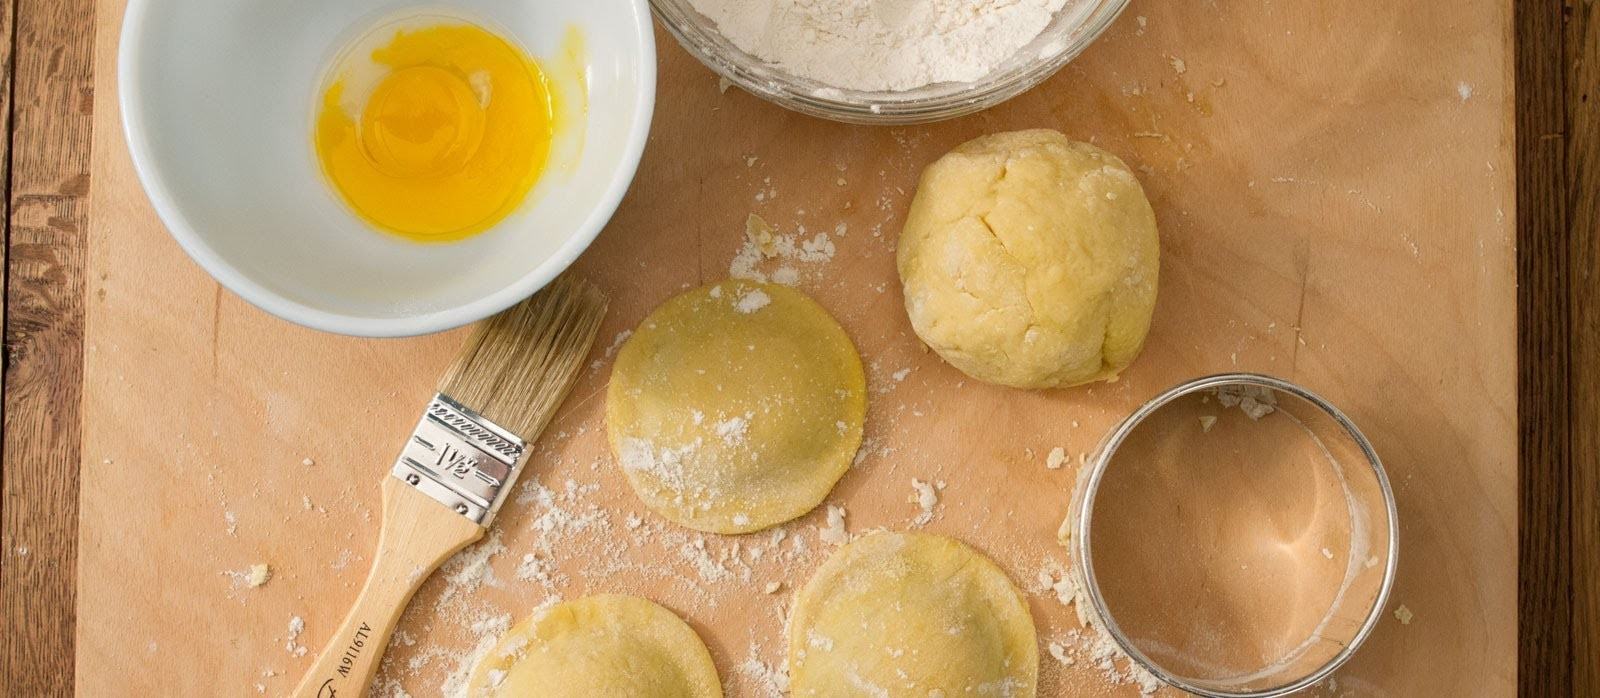 Michael Chiarello's Gnocchi Ravioli Recipe - Cook Taste Eat